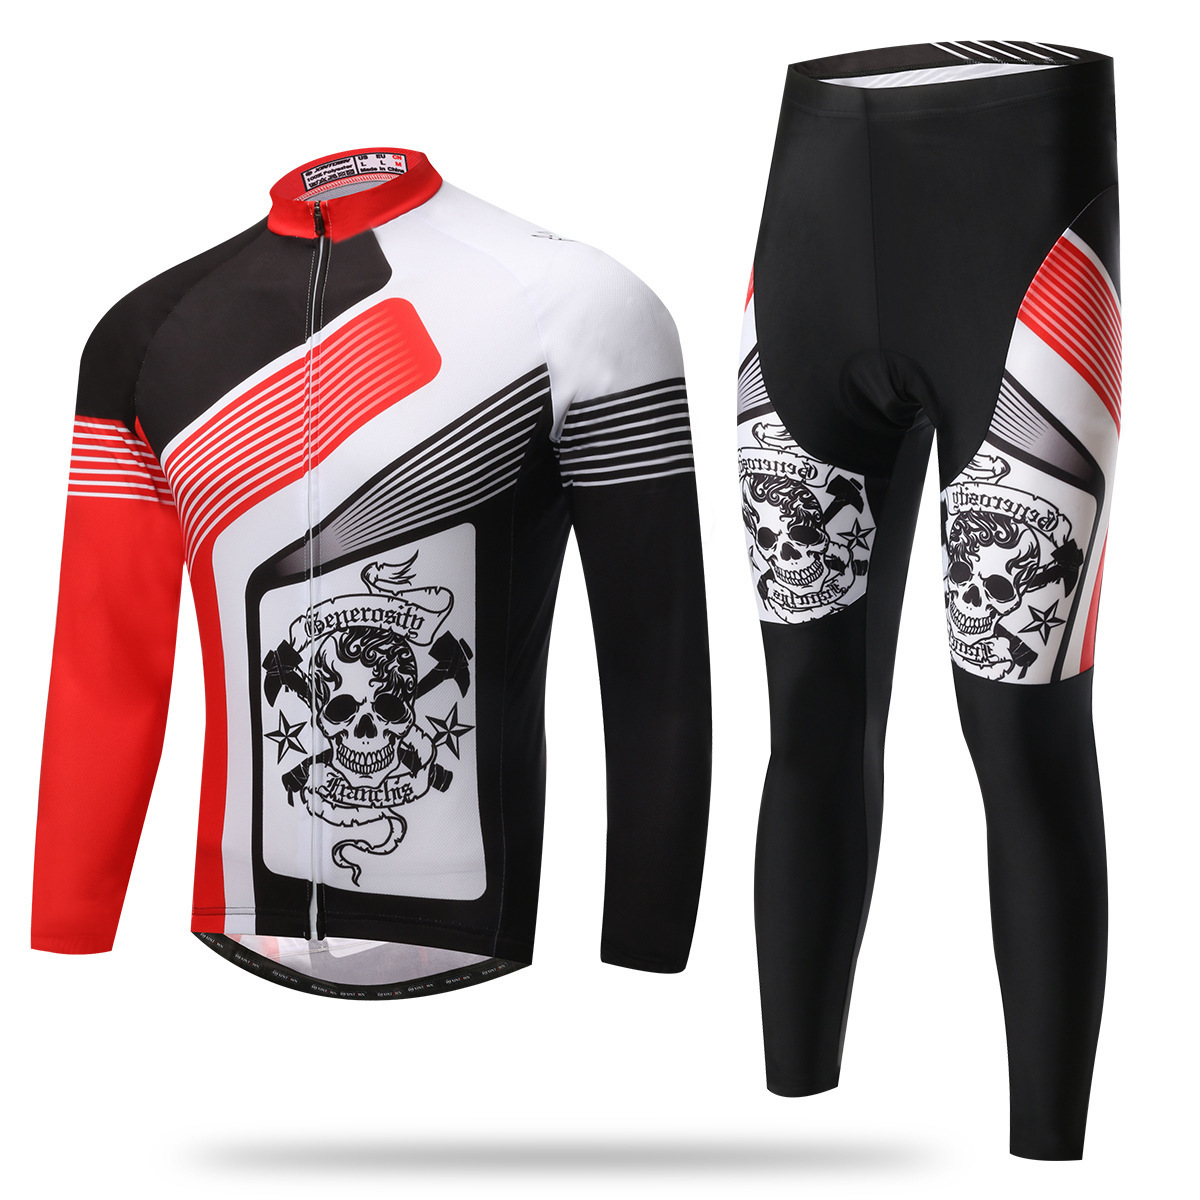 XINTOWN New Cycling Jersey Sets Promotion Item Long Sleeves Bike Wear Spring Sport Clothing Roupas De Ciclismo Mallot Hombre basecamp cycling jersey long sleeves sets spring bike wear breathable bicycle clothing riding outdoor sports sponge 3d padded